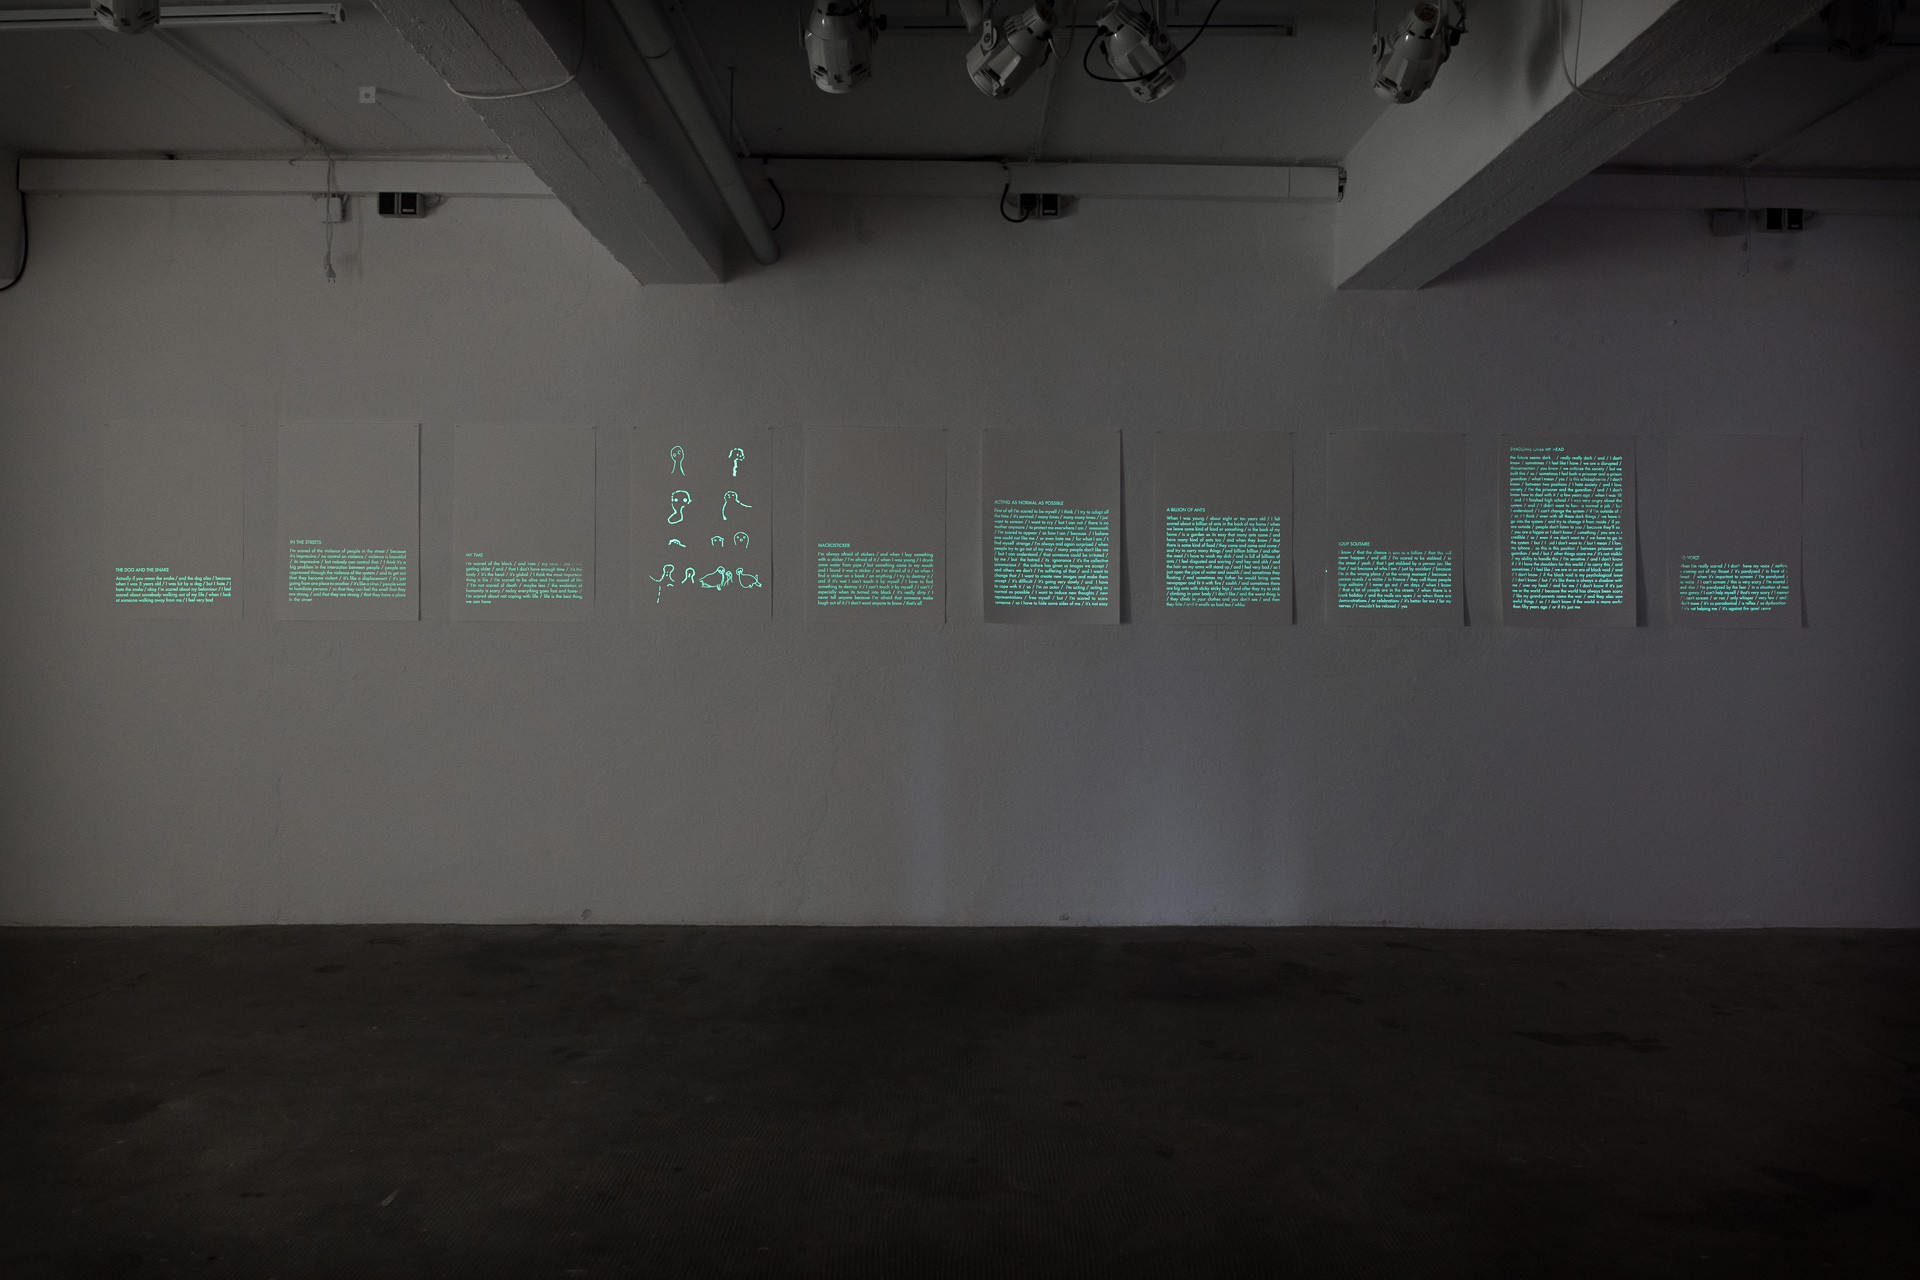 N.Lichtig, Ghosttrap (sound & performance / photography / installation: photoluminescent silkscreen prints, timer, lights), ongoing since 2007